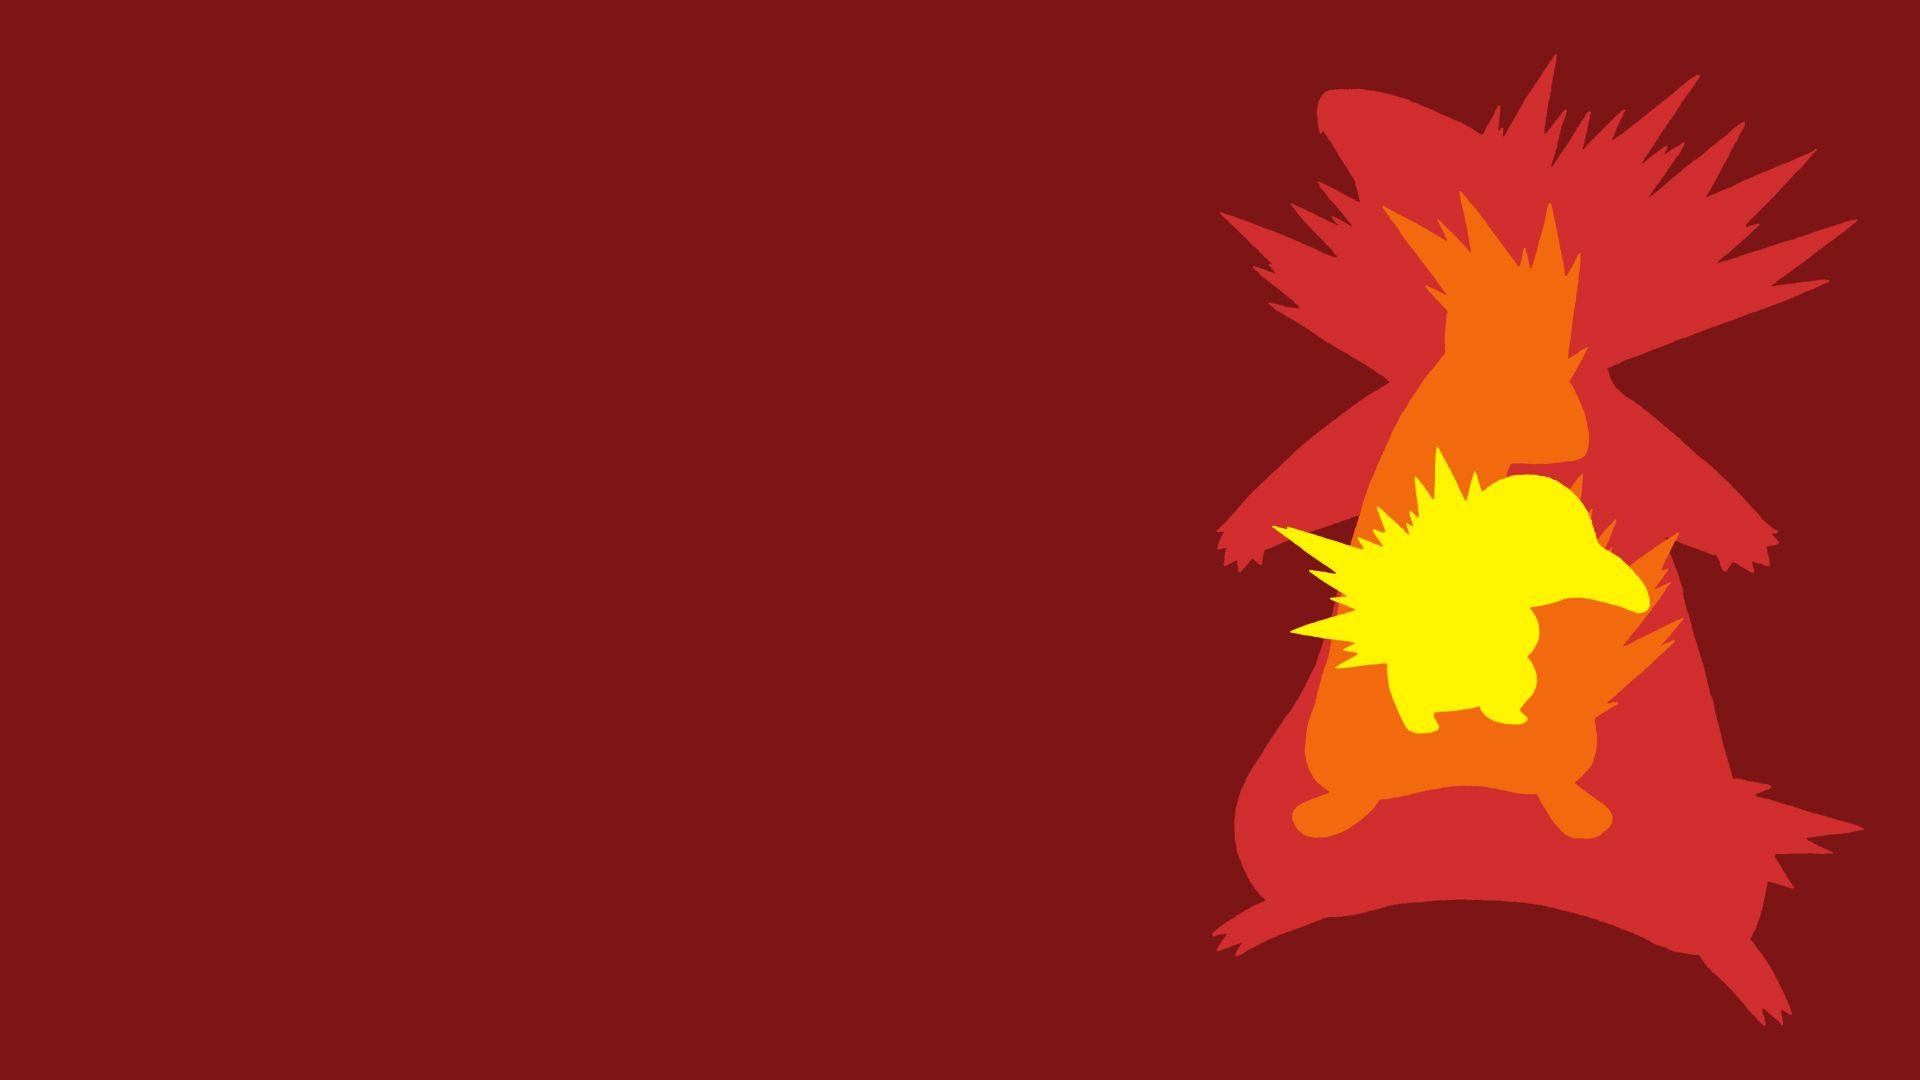 Cyndaquil Evolution Line Minimalist Wallpaper By BrulesCorrupted